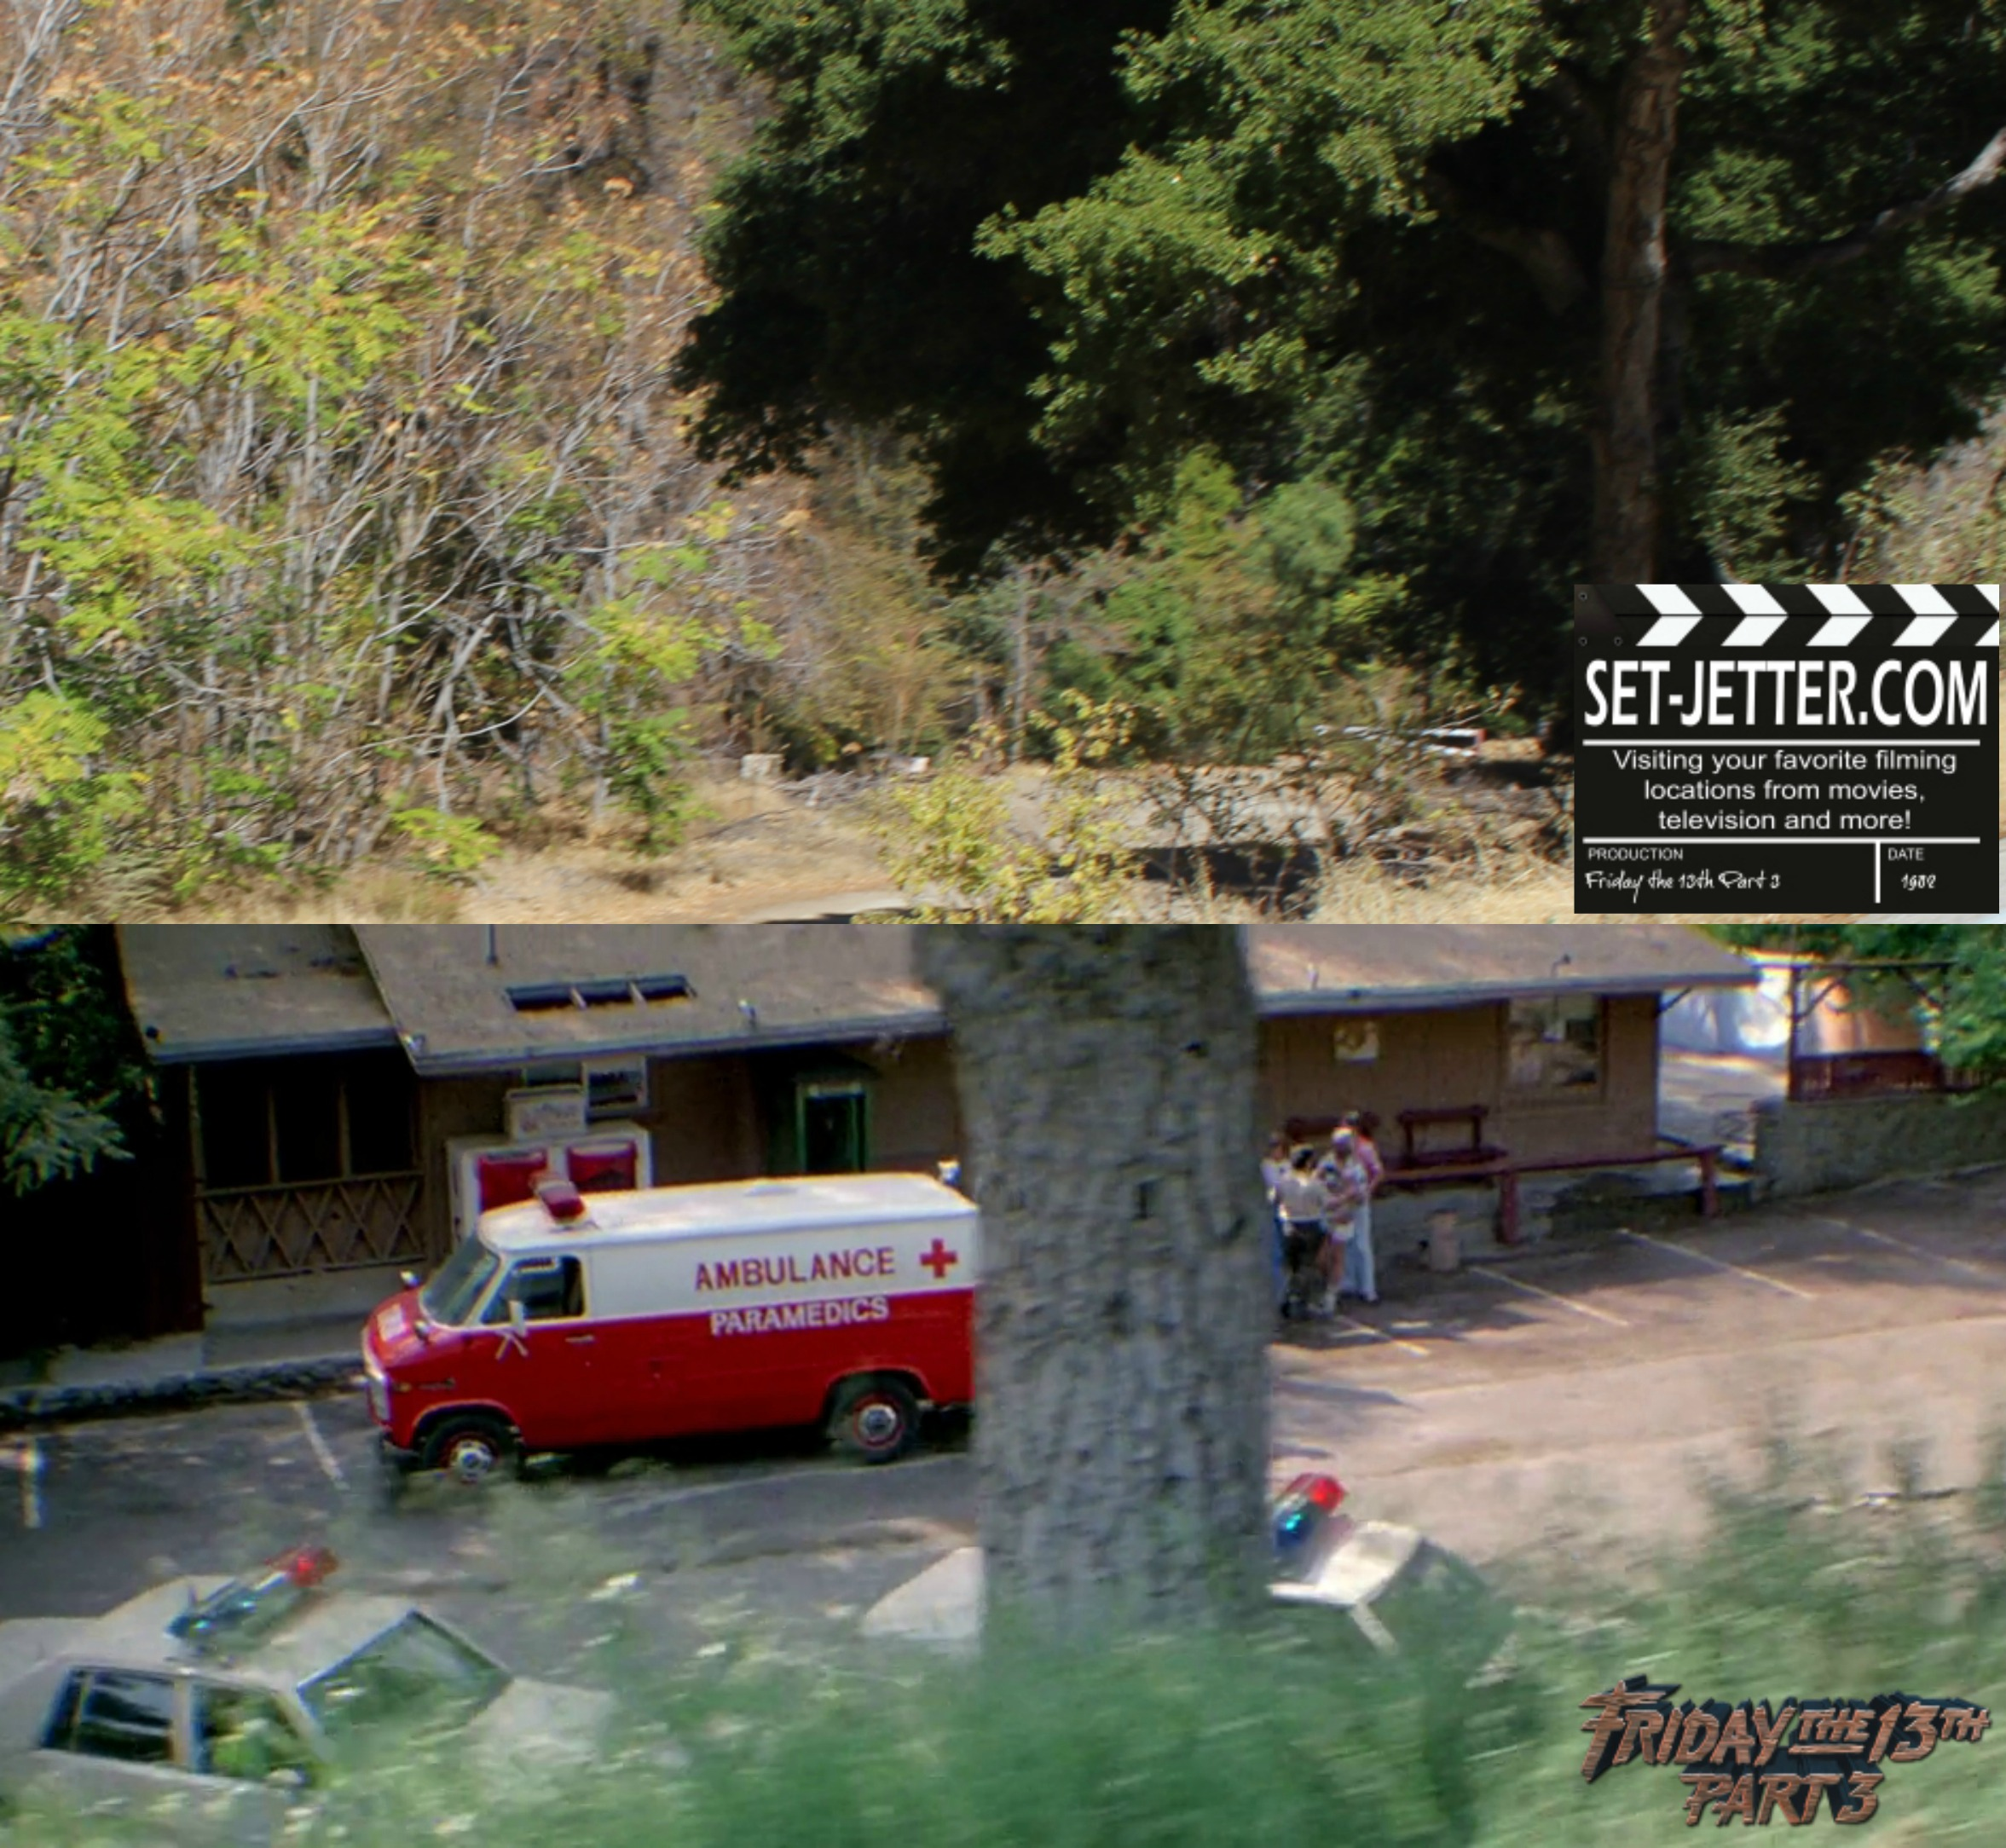 Friday the 13th Part 3 comparison 224.jpg